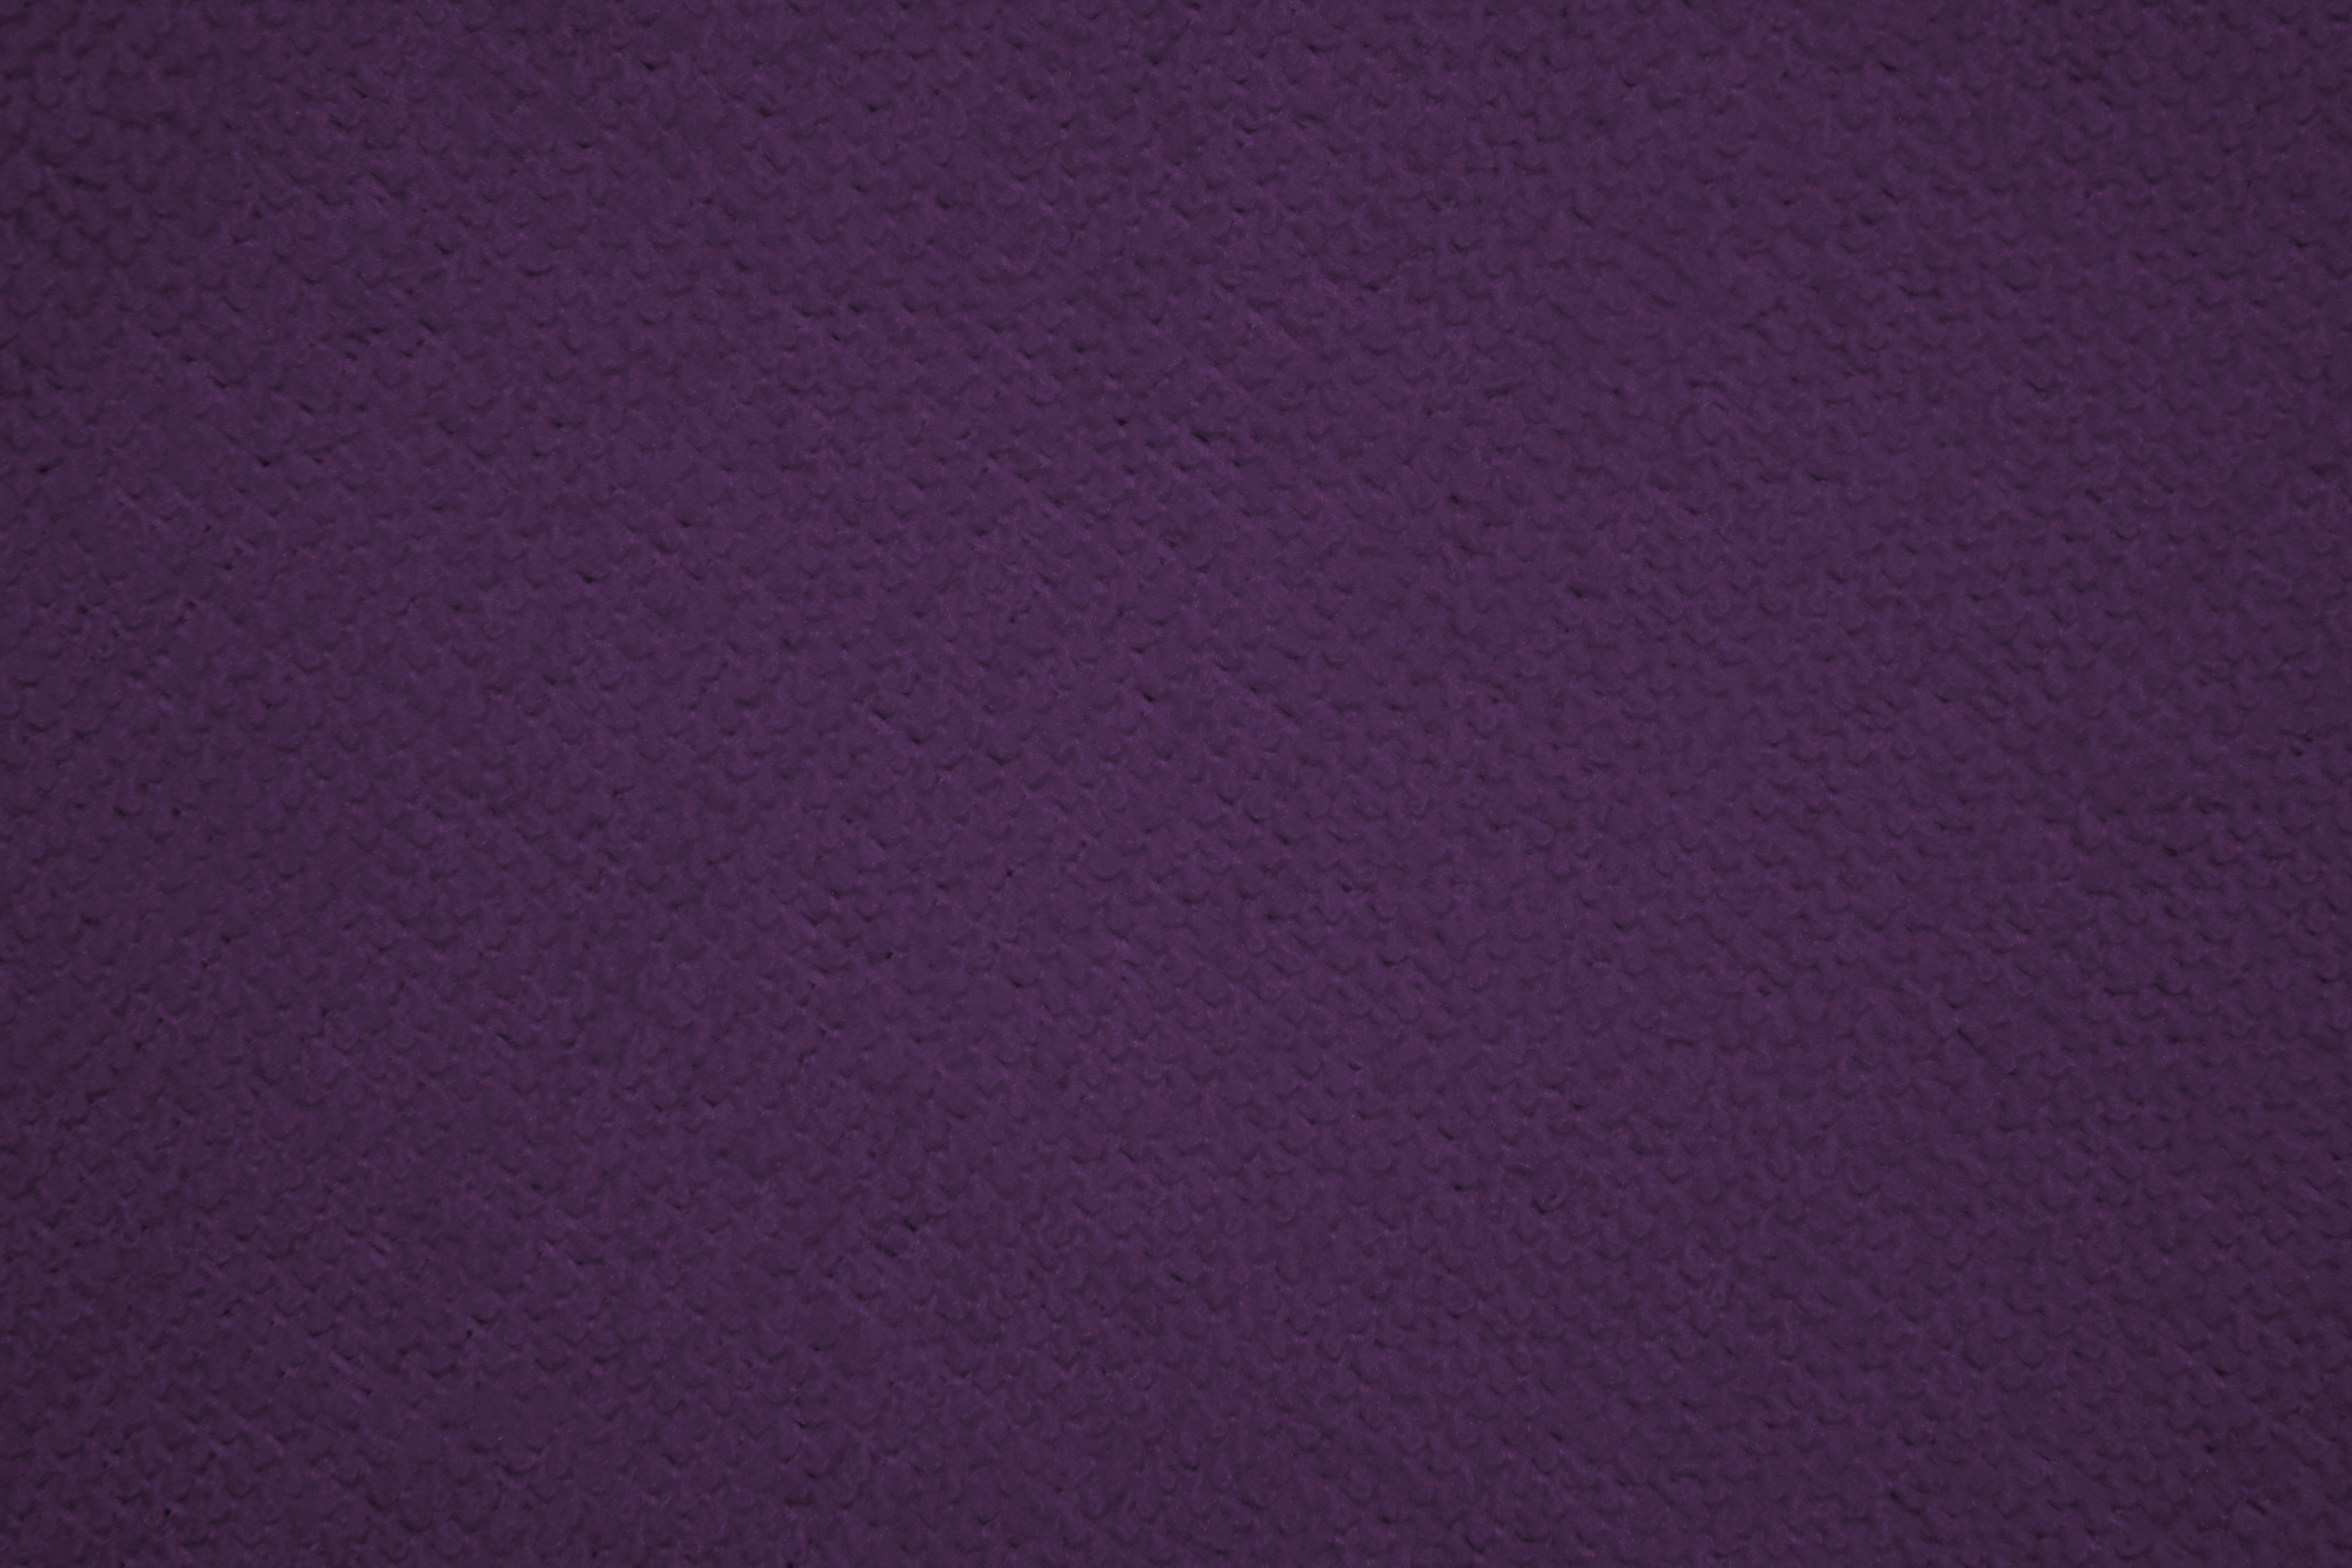 Plum Purple Microfiber Cloth Fabric Texture Picture Photograph 3600x2400